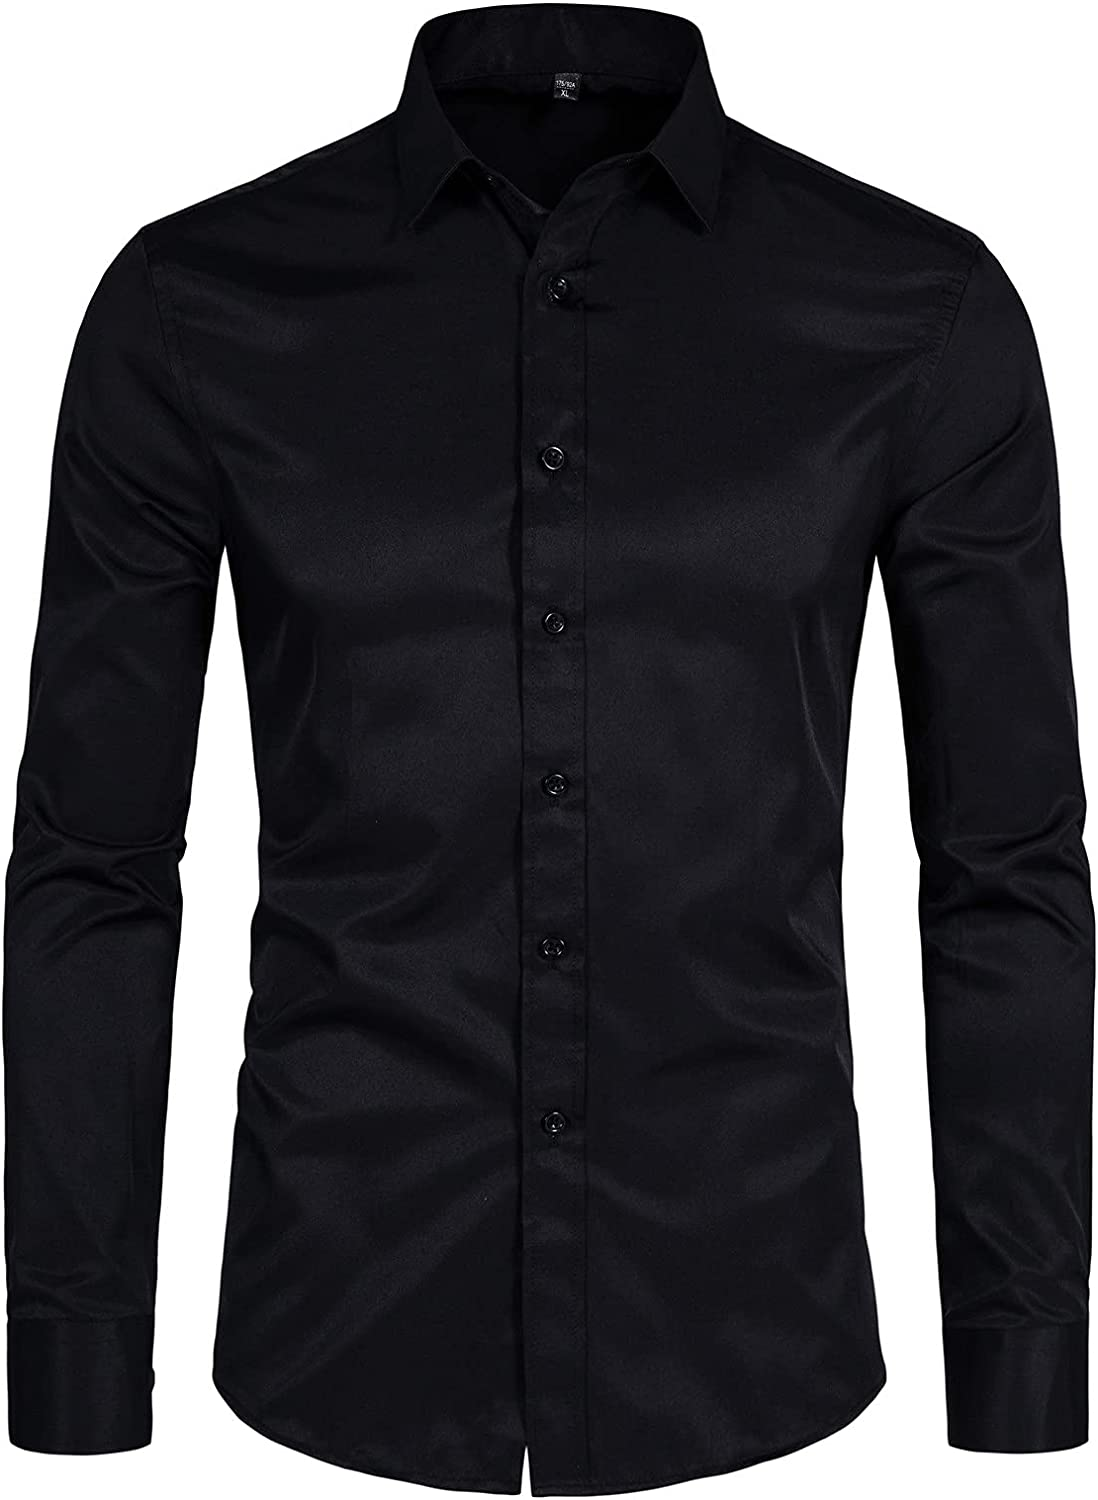 DELCARINO Men's Long Sleeve Button Up Shirts Solid Slim Fit Casual Business Formal Dress Shirt